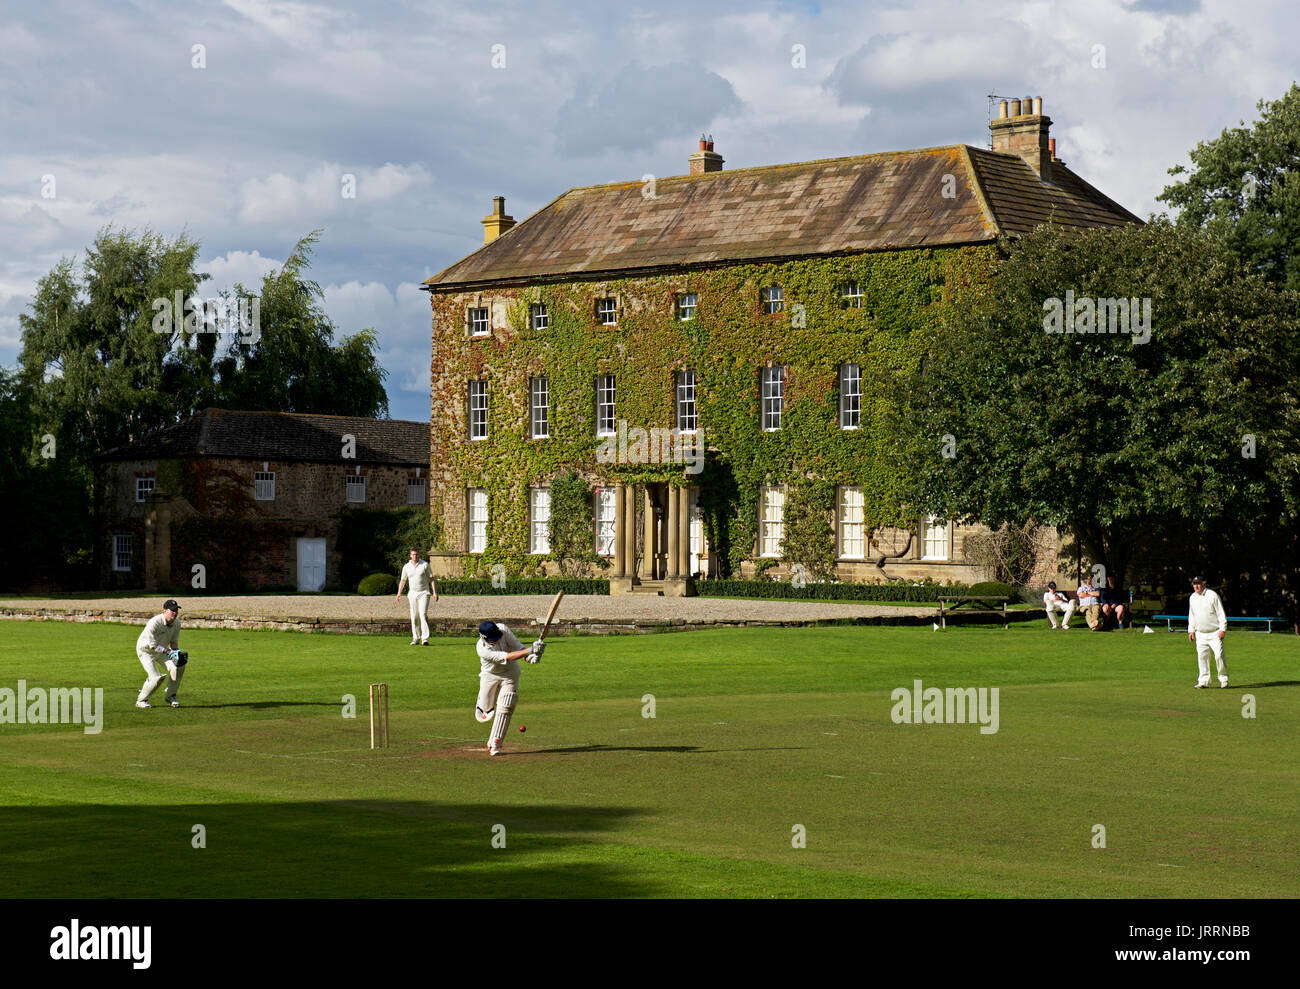 Cricket match in the village of Crakehall, North Yorkshire, England UK Stock Photo